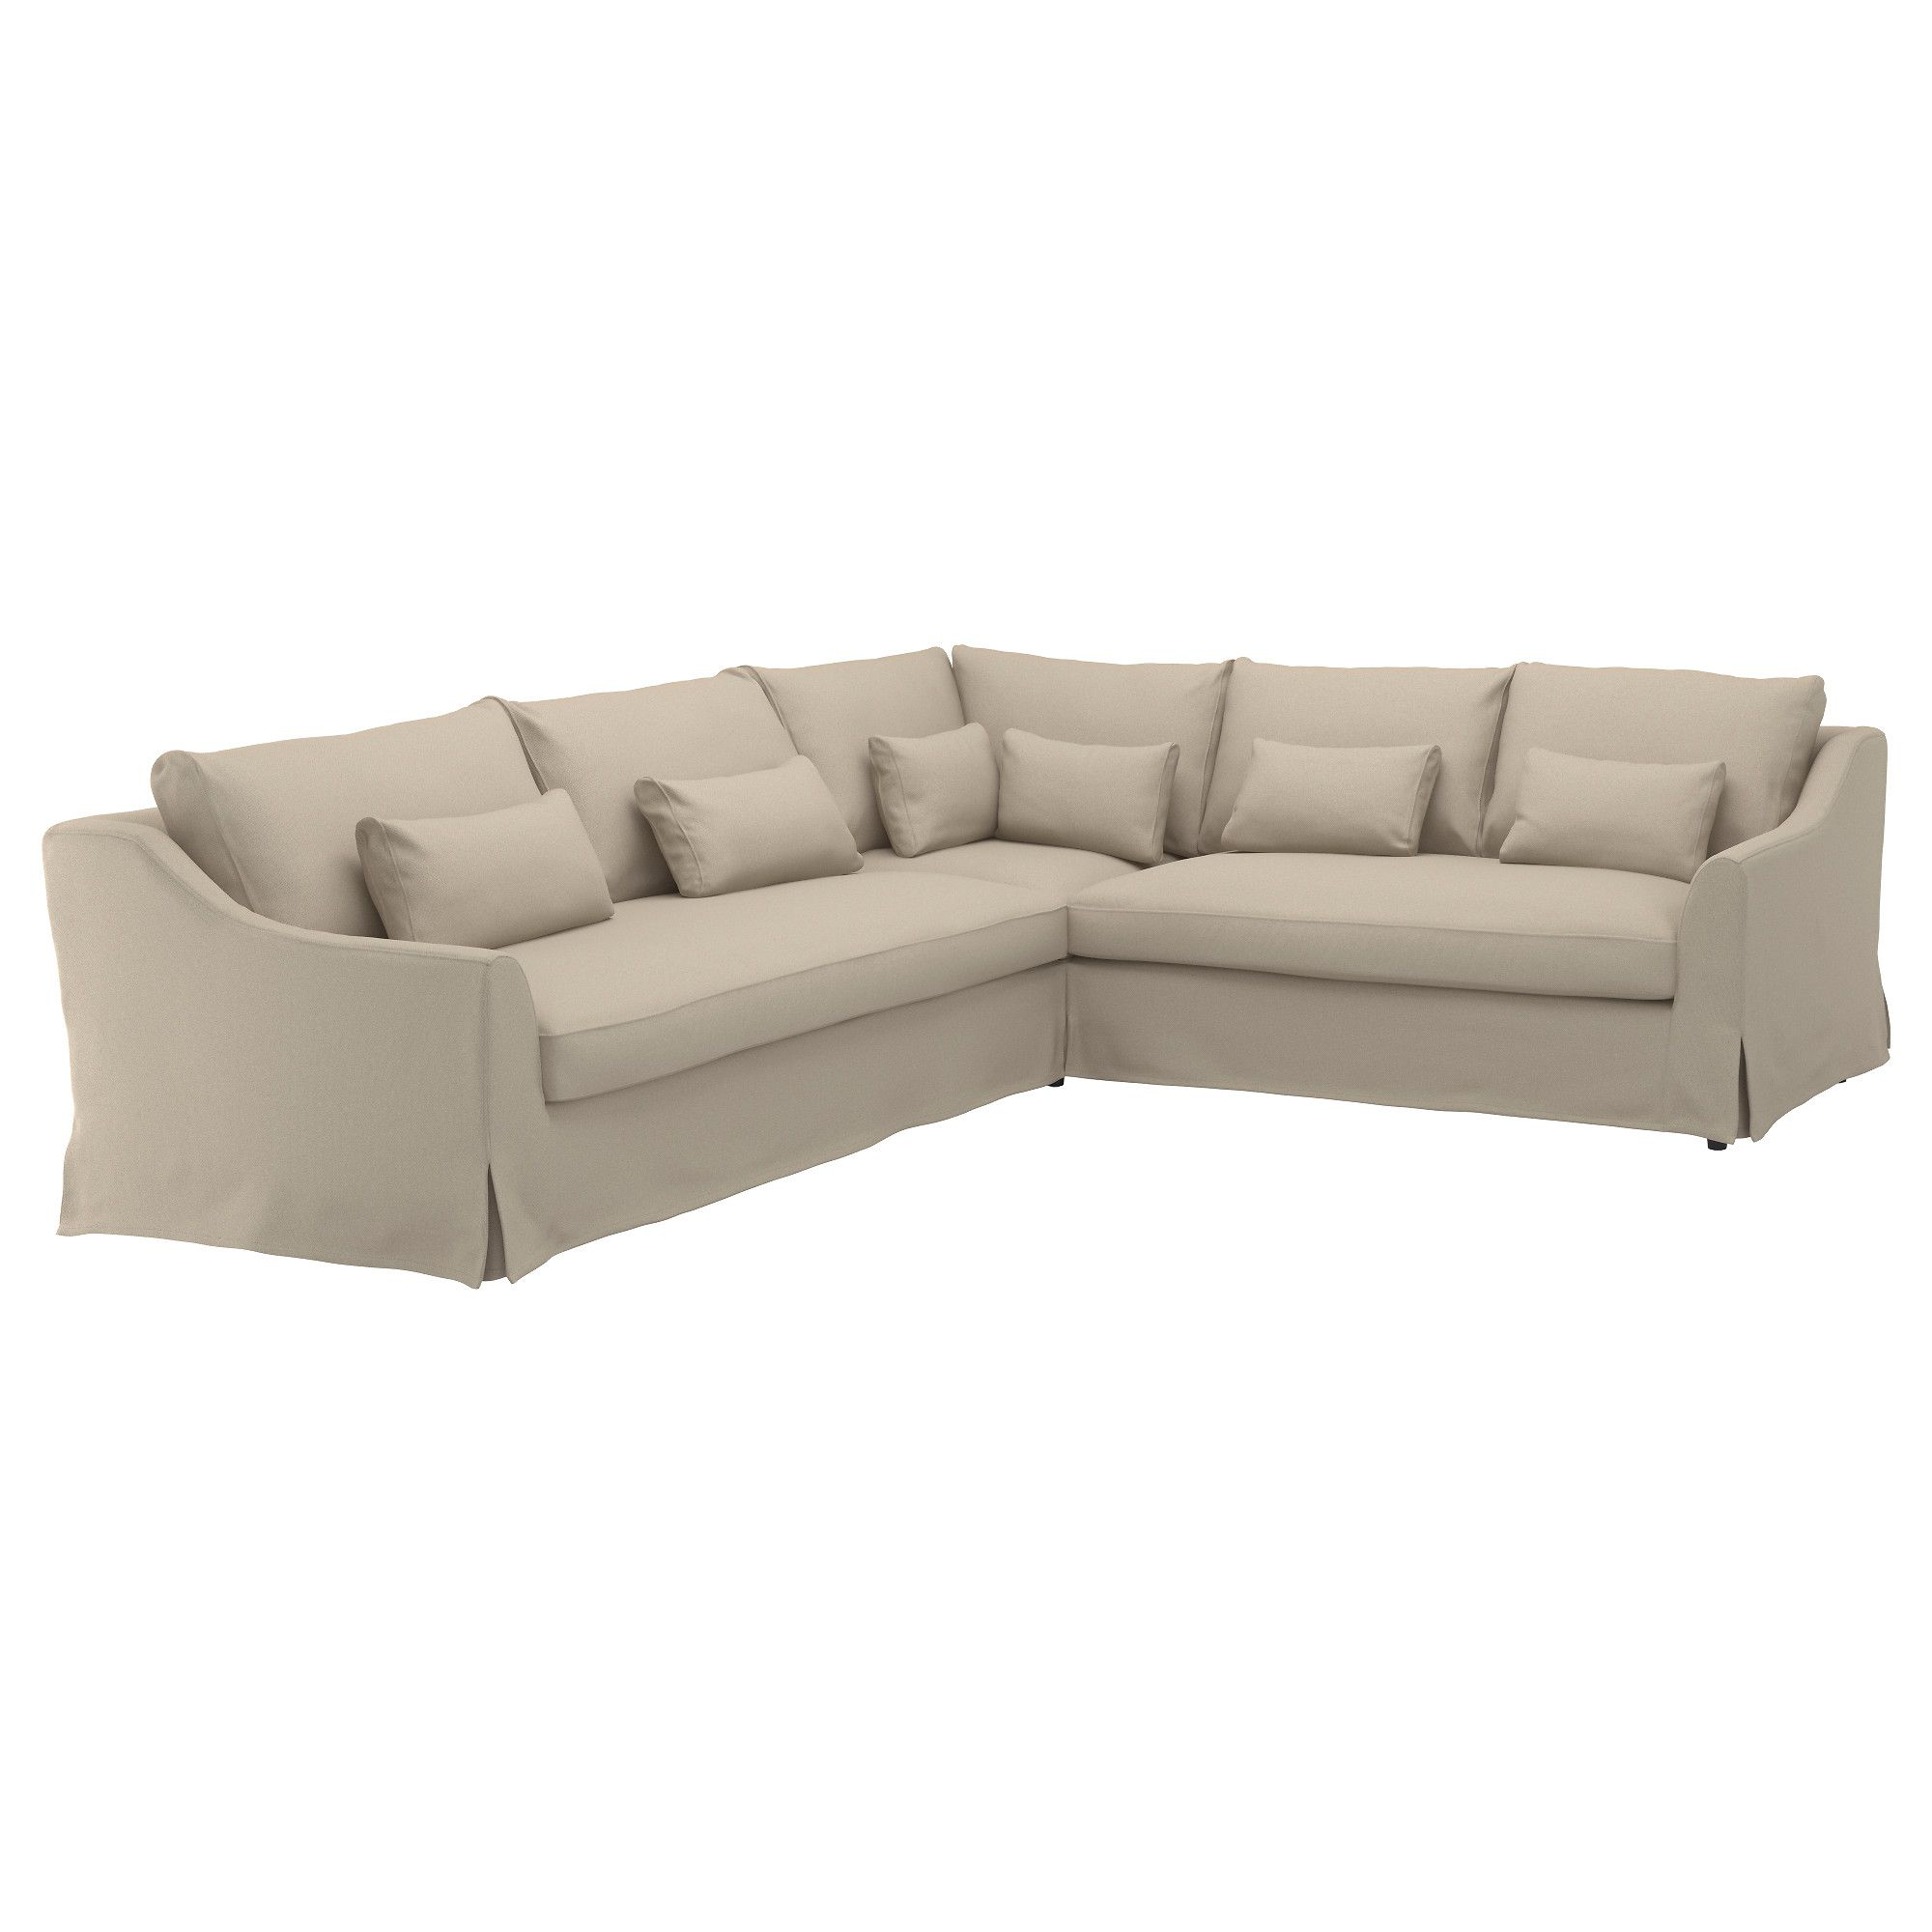 Charmant IKEA   FÄRLÖV Sectional,5 Seat/sofa Left Flodafors Beige